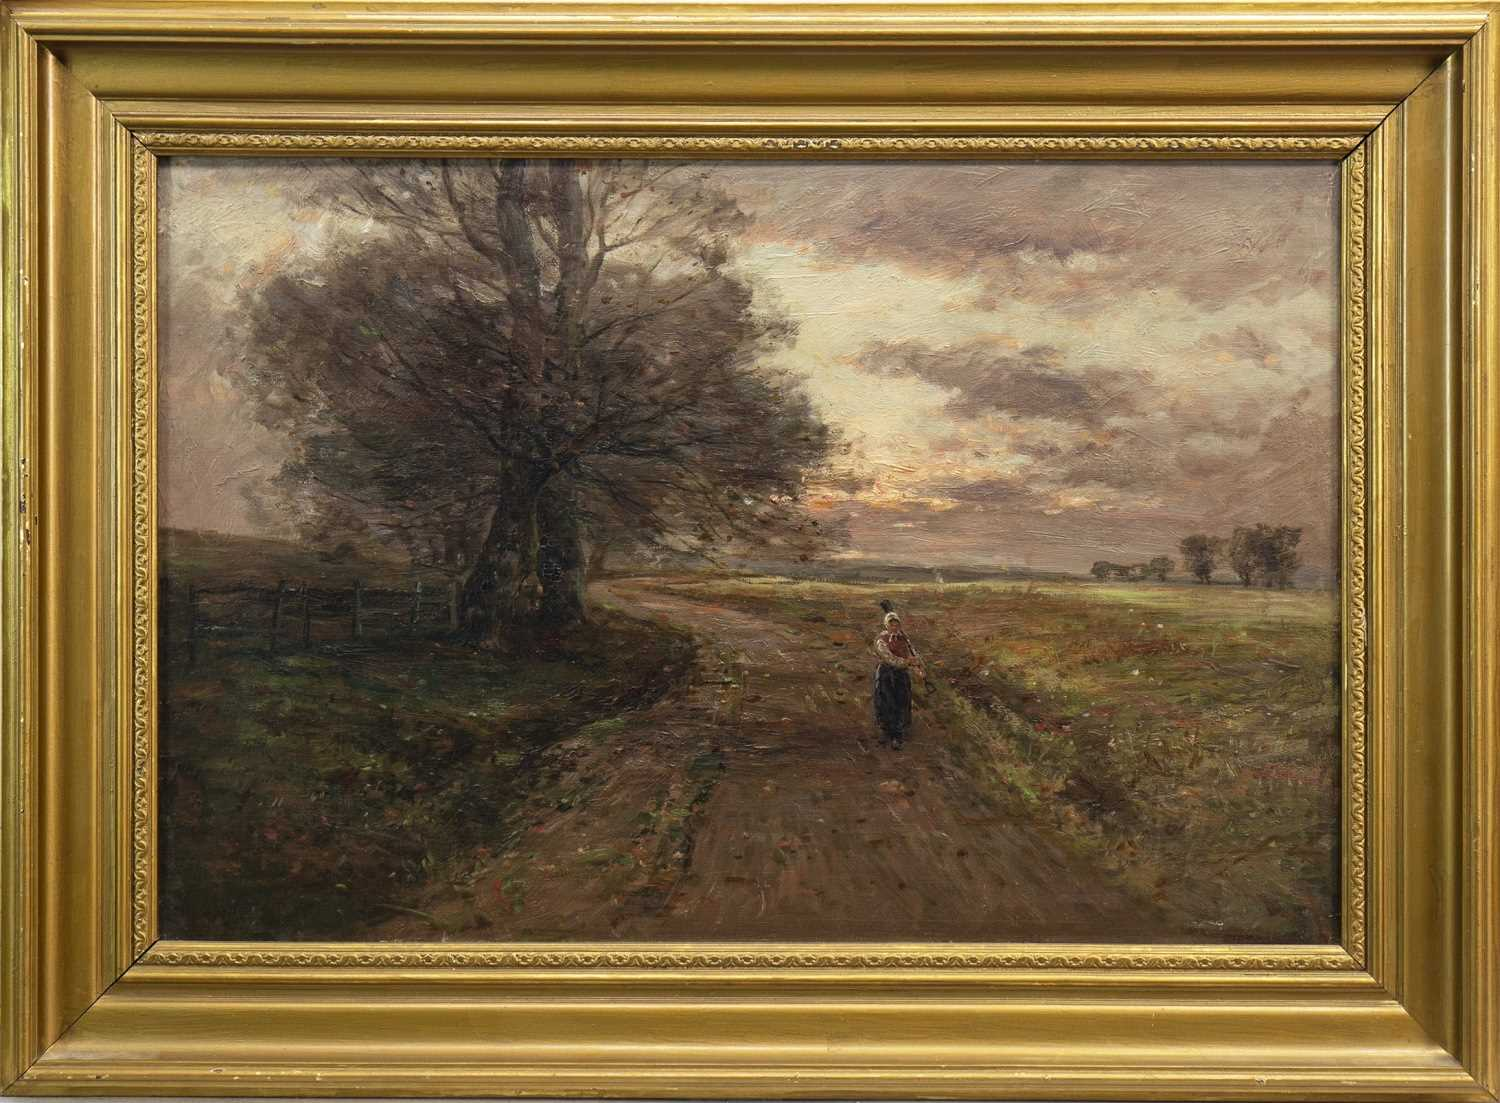 Lot 419-FIGURE ON A COUNTRY PATH, AN OIL BY JOHN HAMILTON GLASS